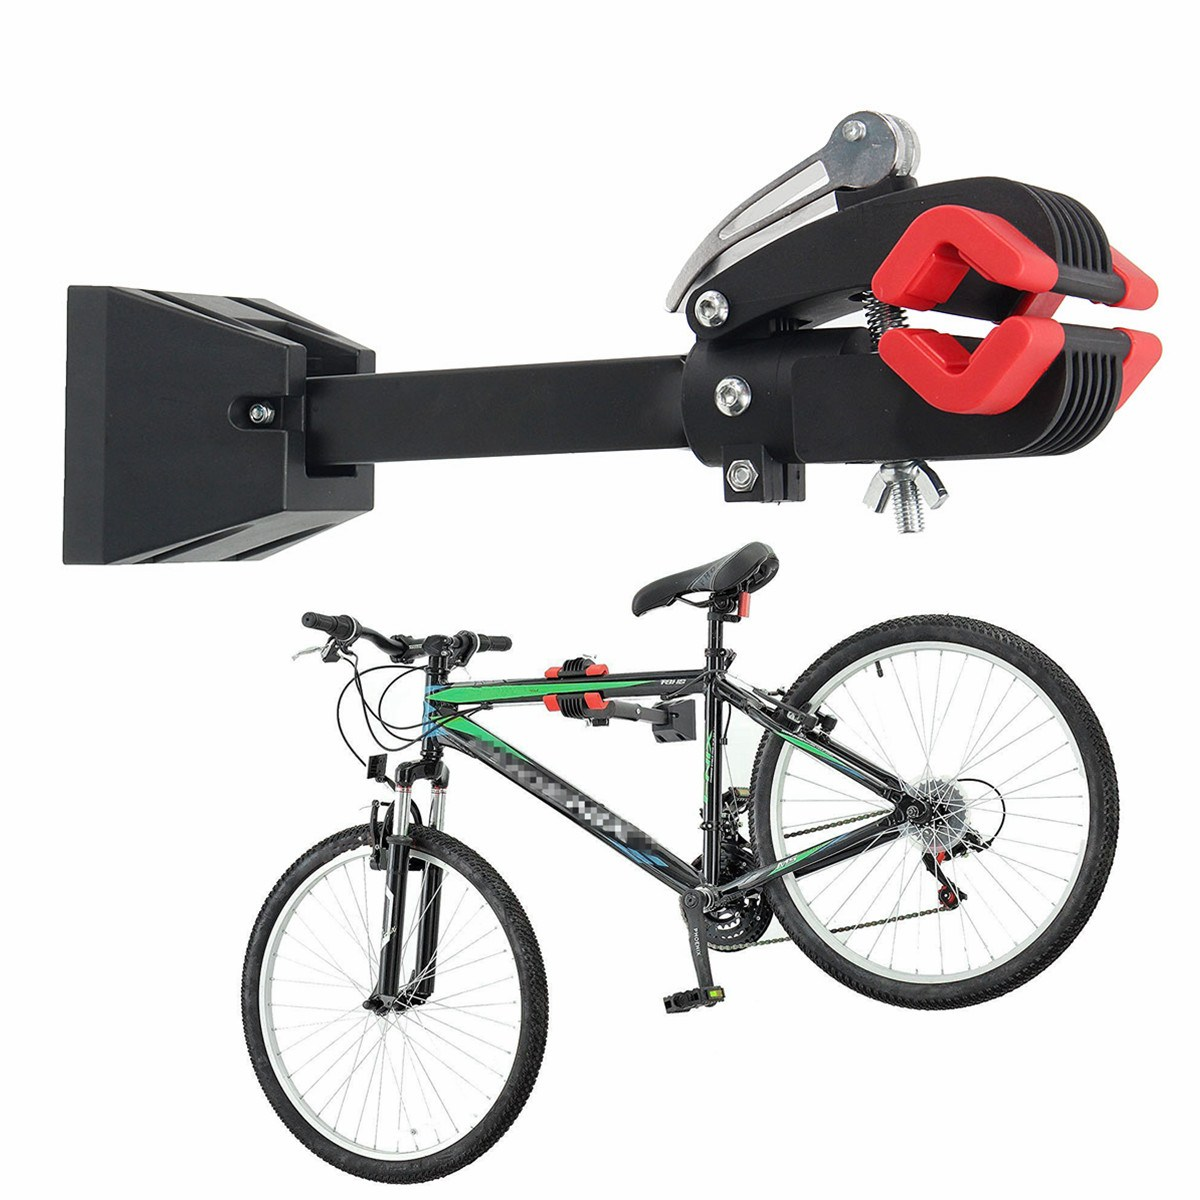 New Arrival Heavy Duty Wall Mount Bike Bicycle Maintenance Mechanic Repair Folding Clamp Cycling MTB Wall Mount Repair Stand